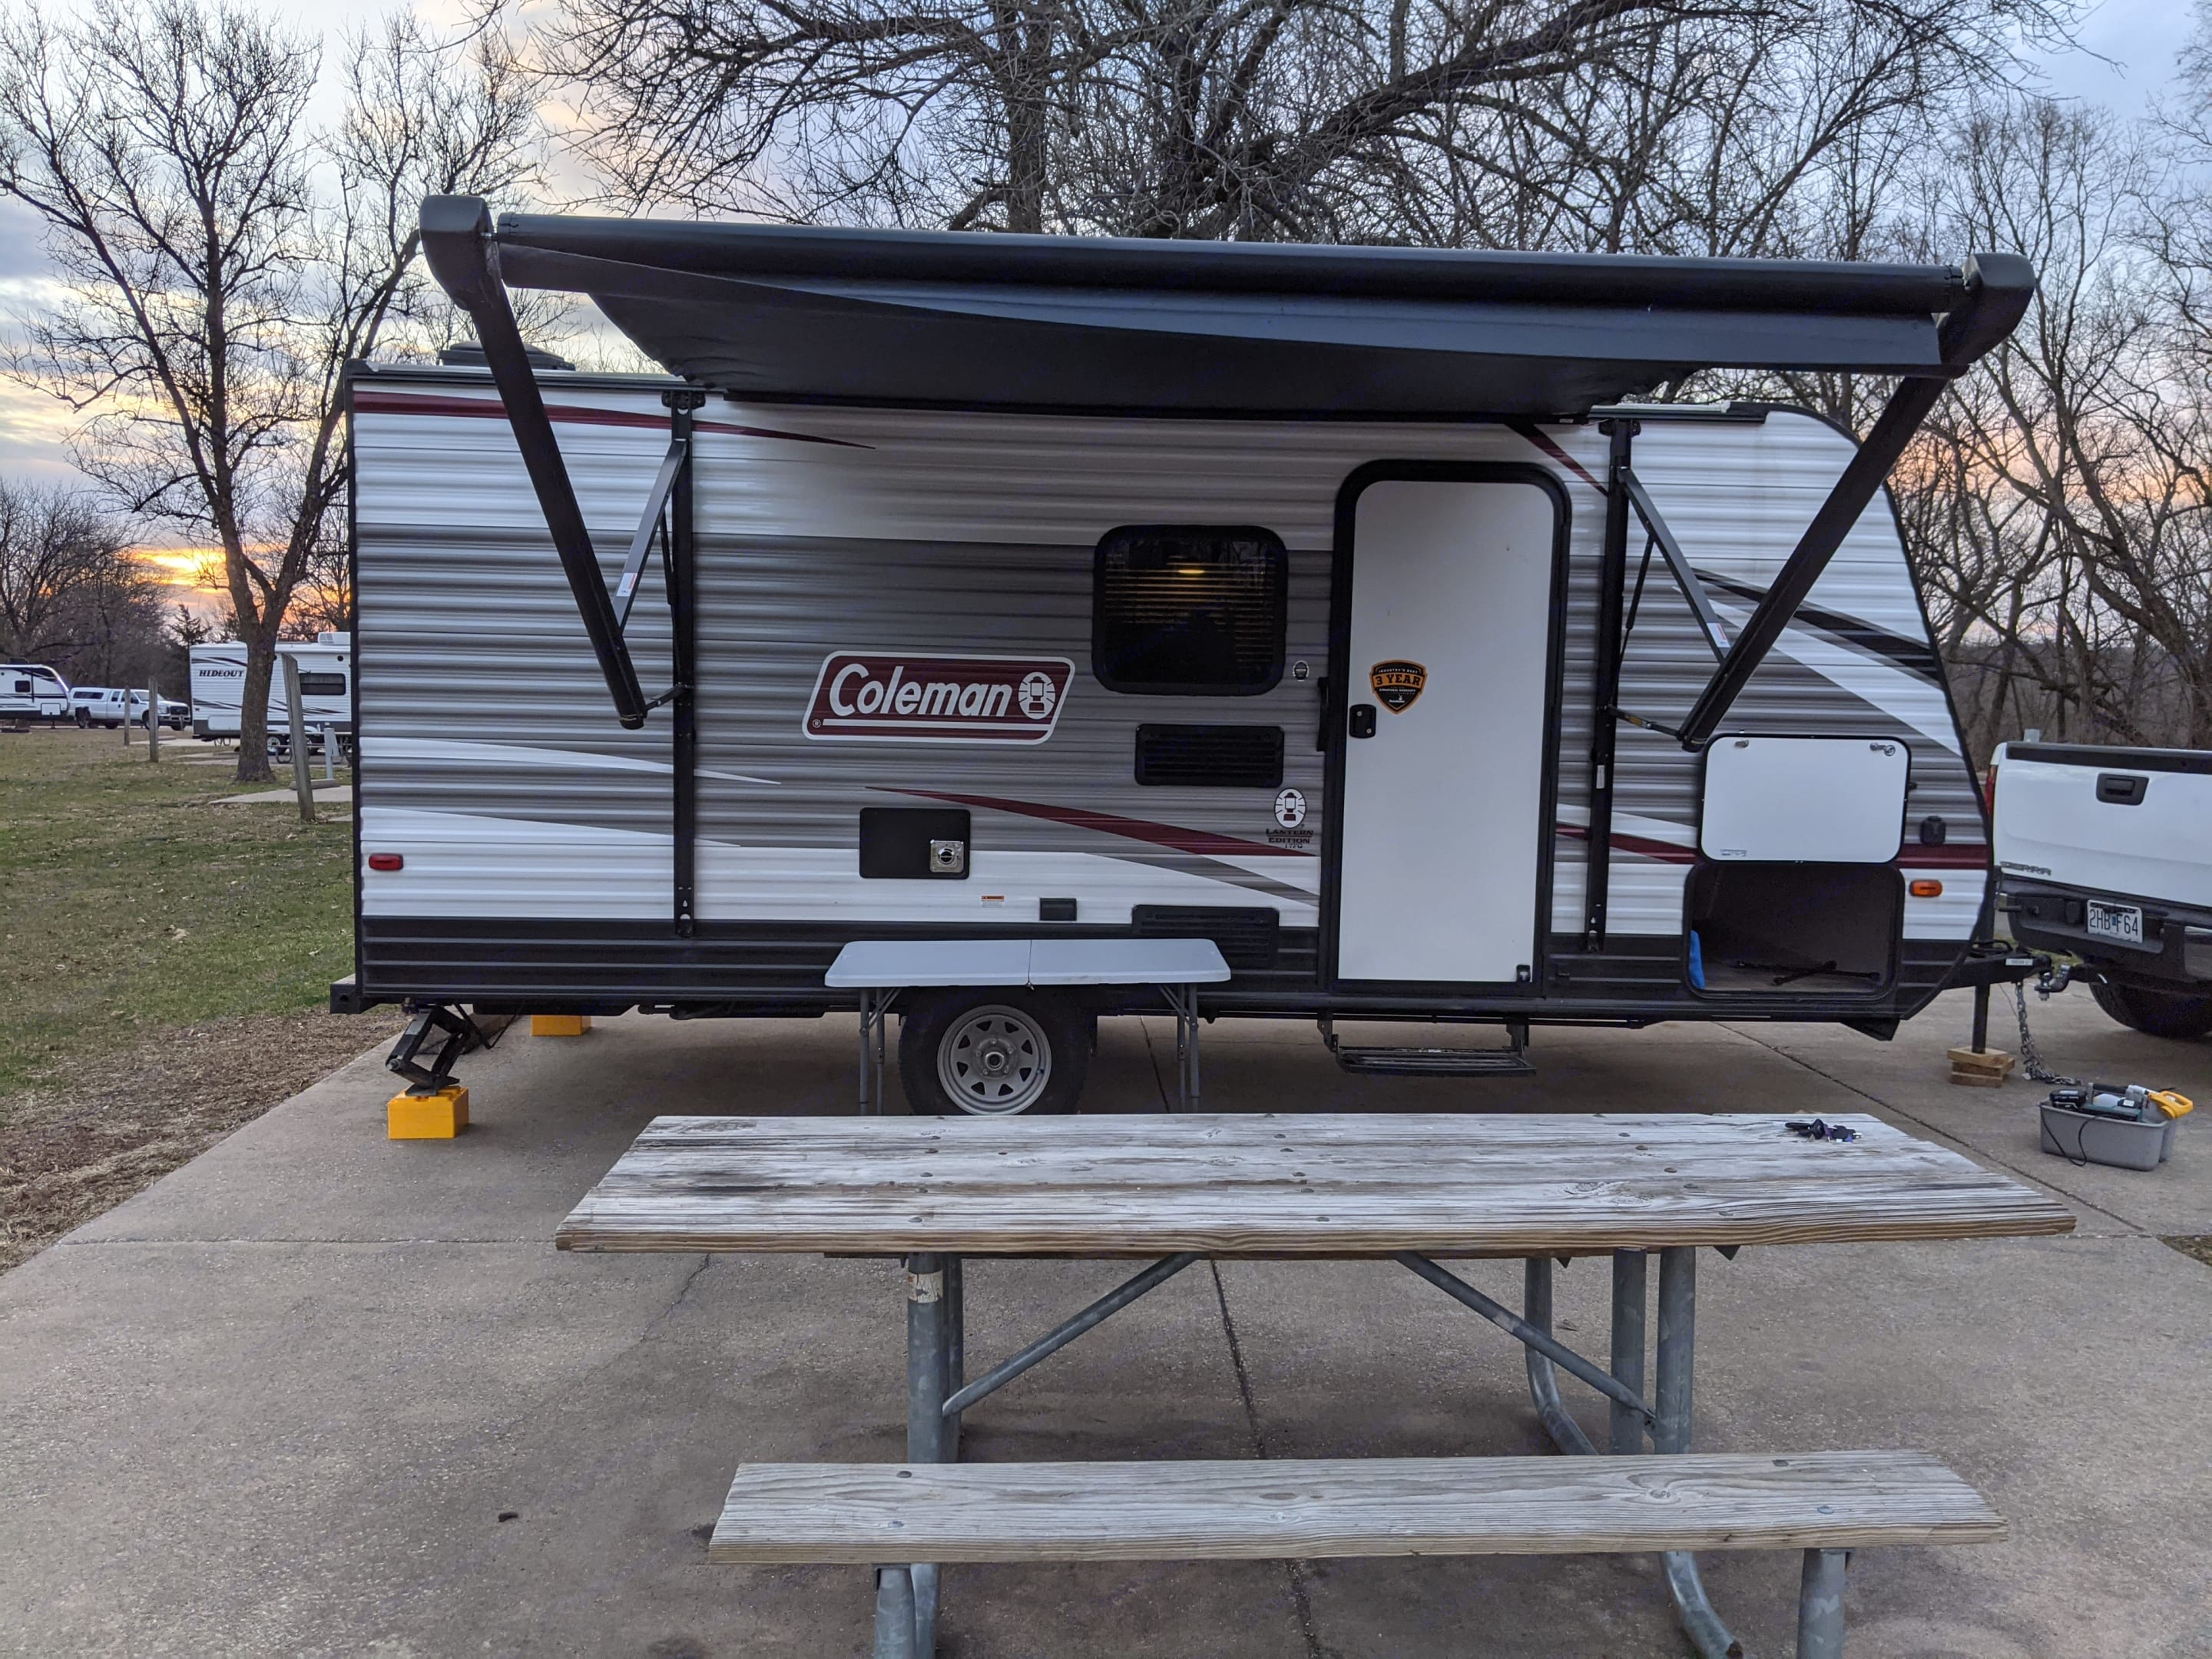 The motorized awning is wonderful for those rainy mornings, or hot afternoons. Provides a perfect space to set up an outdoor cooking station!. Dutchmen Coleman Lantern 17FQ 2020